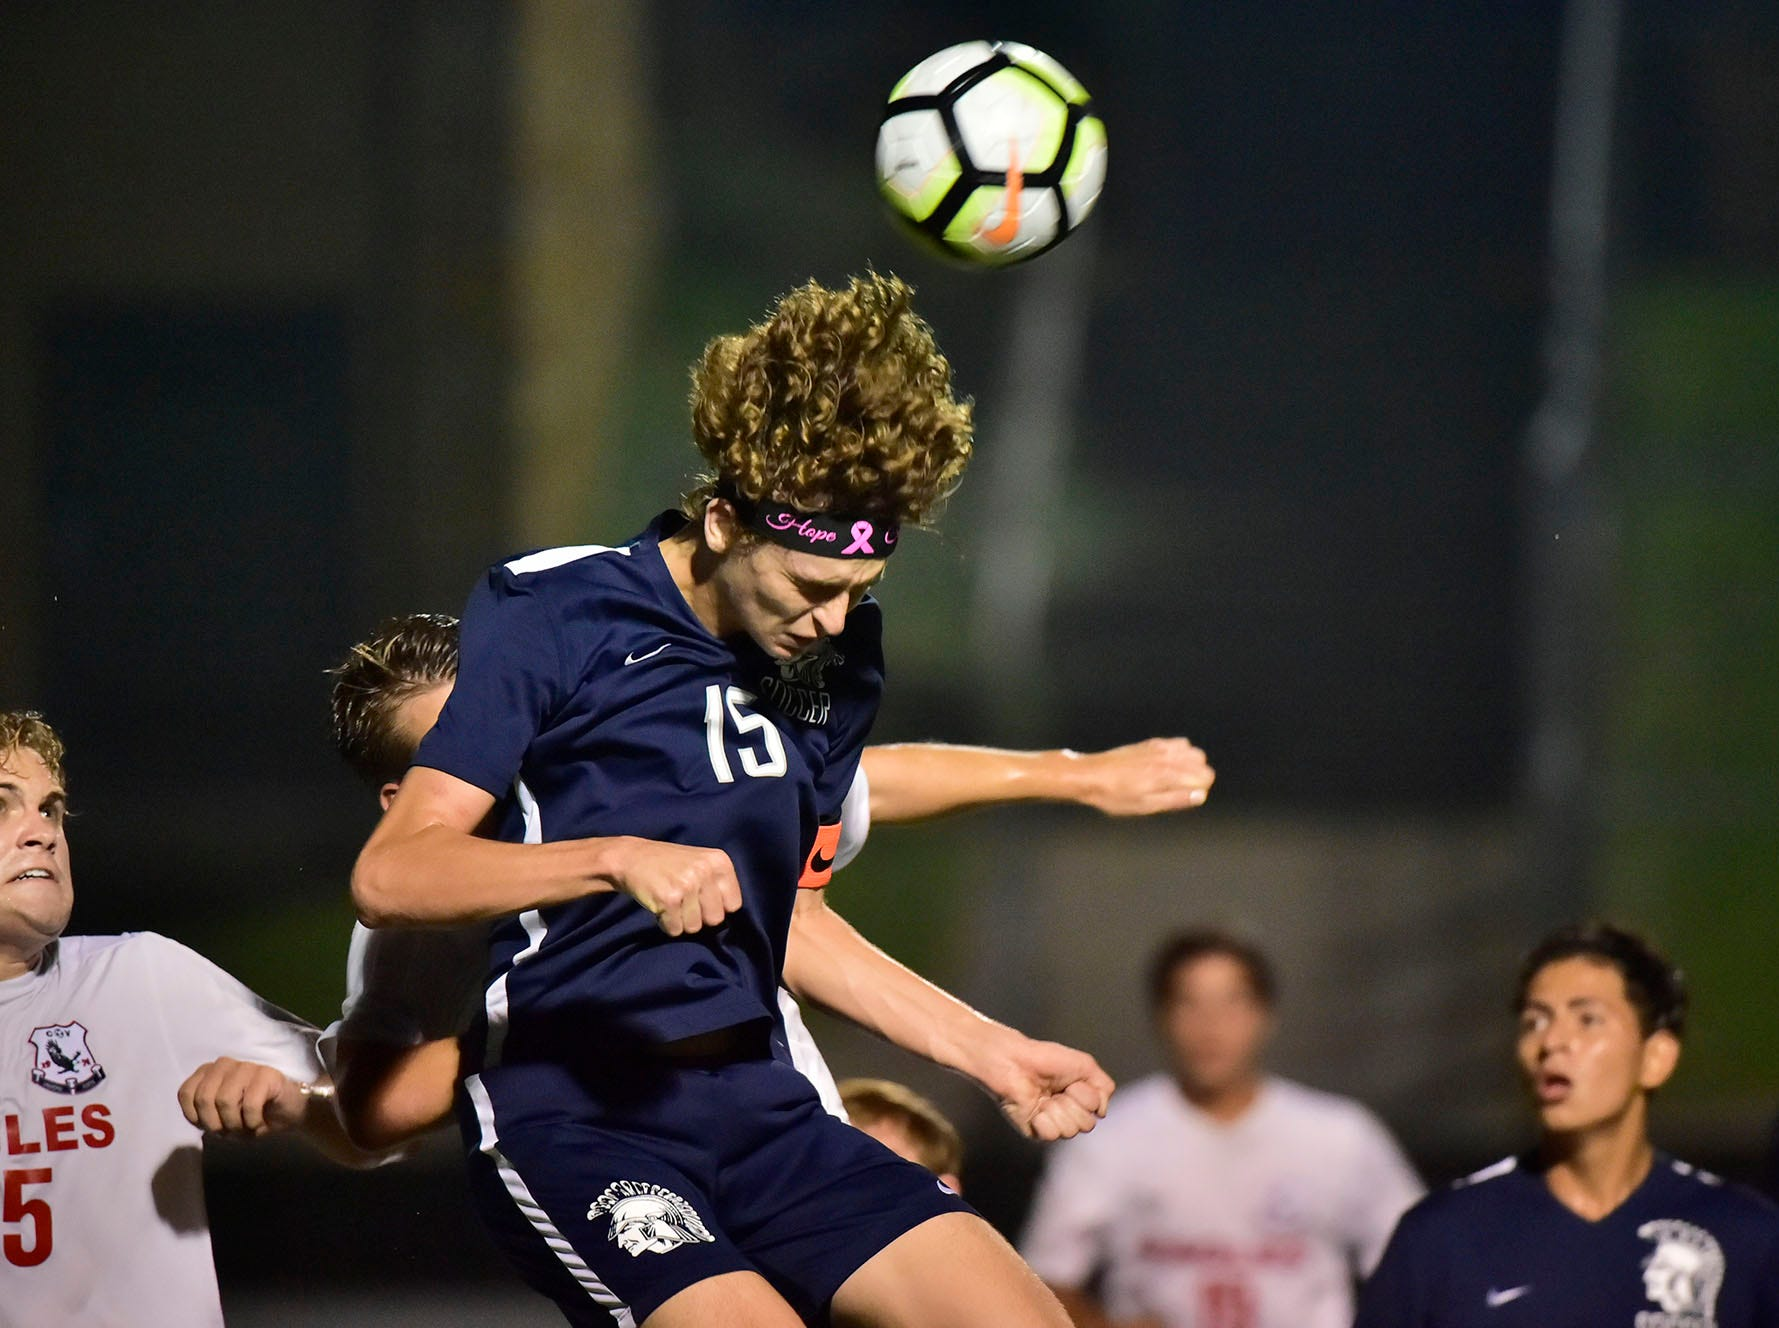 Chambersburg's Aaron Maynard (15) heads the ball. Chambersburg hosted Cumberland Valley in PIAA soccer on Thursday, Oct. 4, 2018, but dropped a 2-1 match in double overtime.